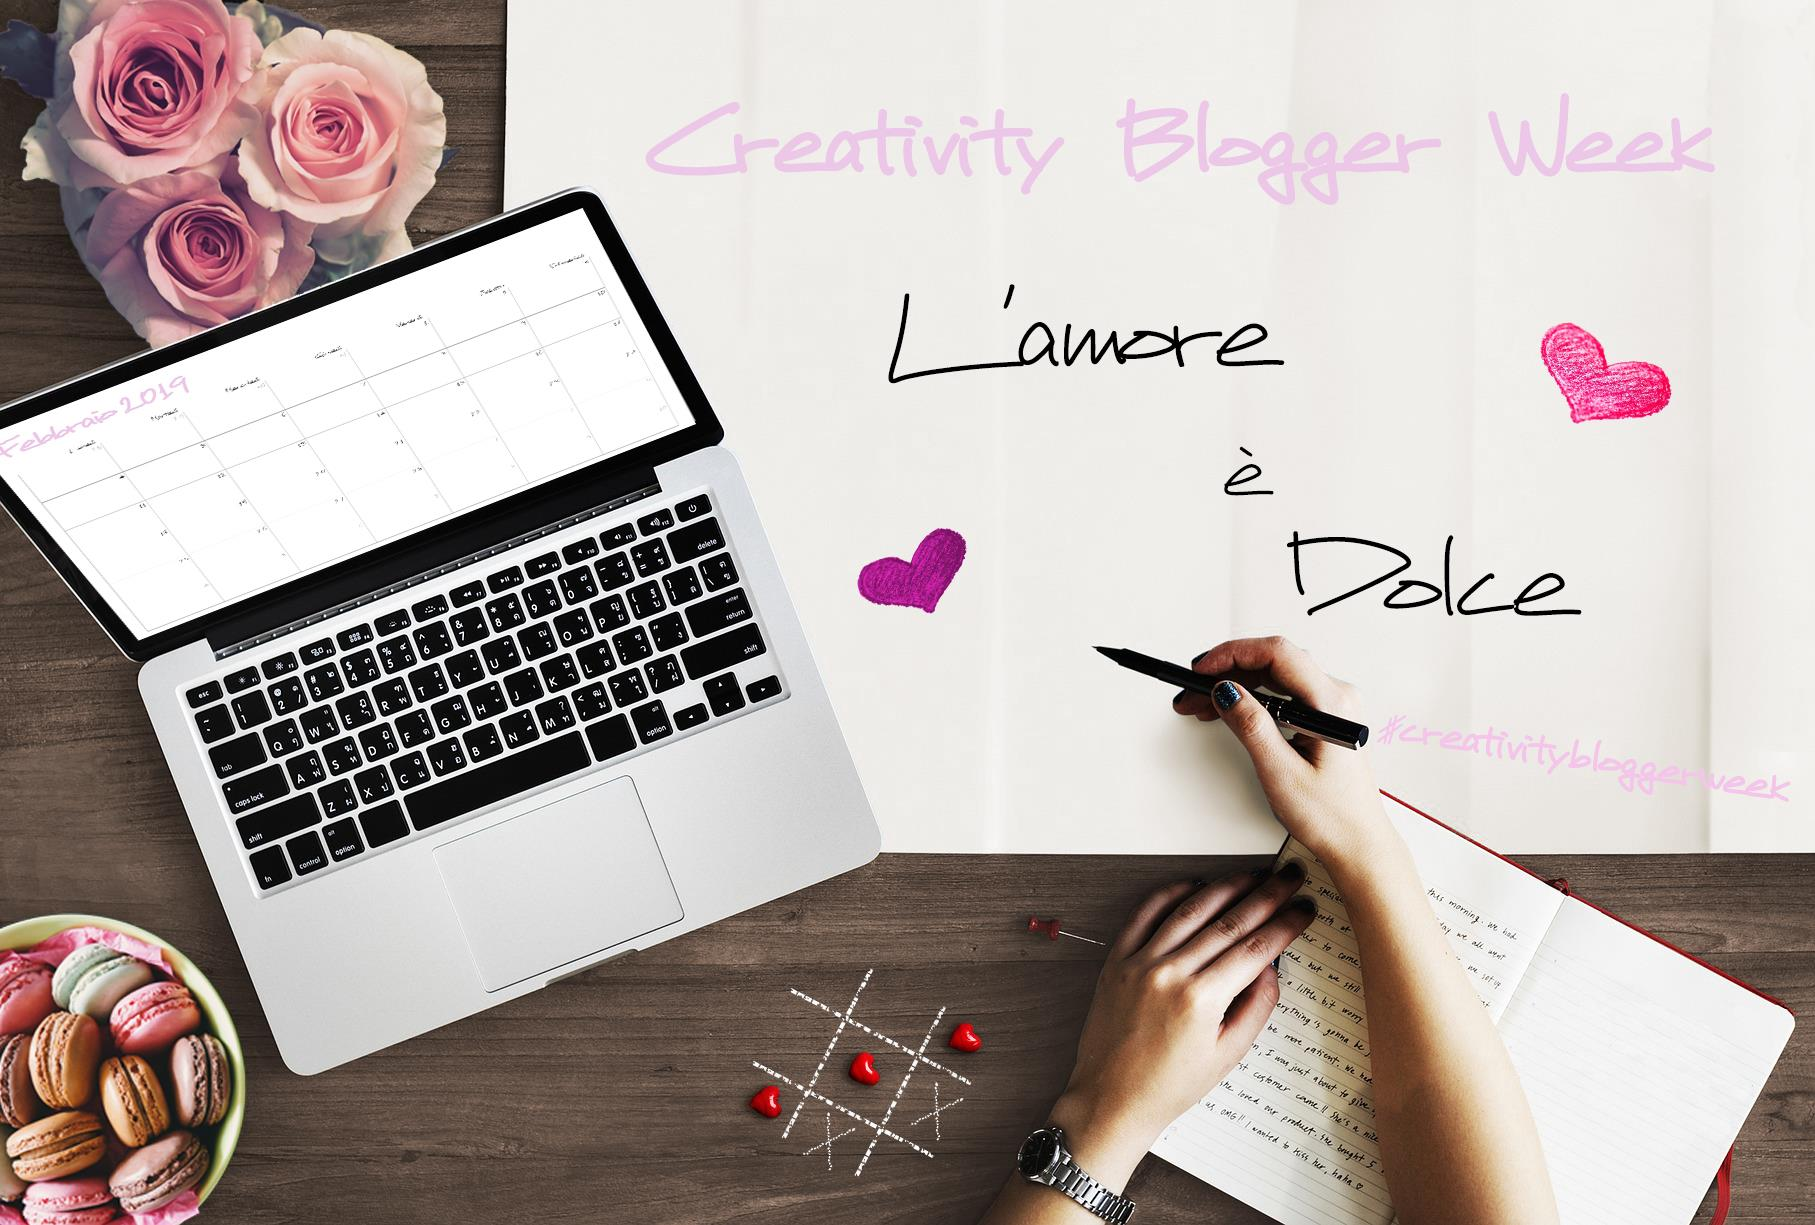 L'amore è dolce, Creativity blogger Week